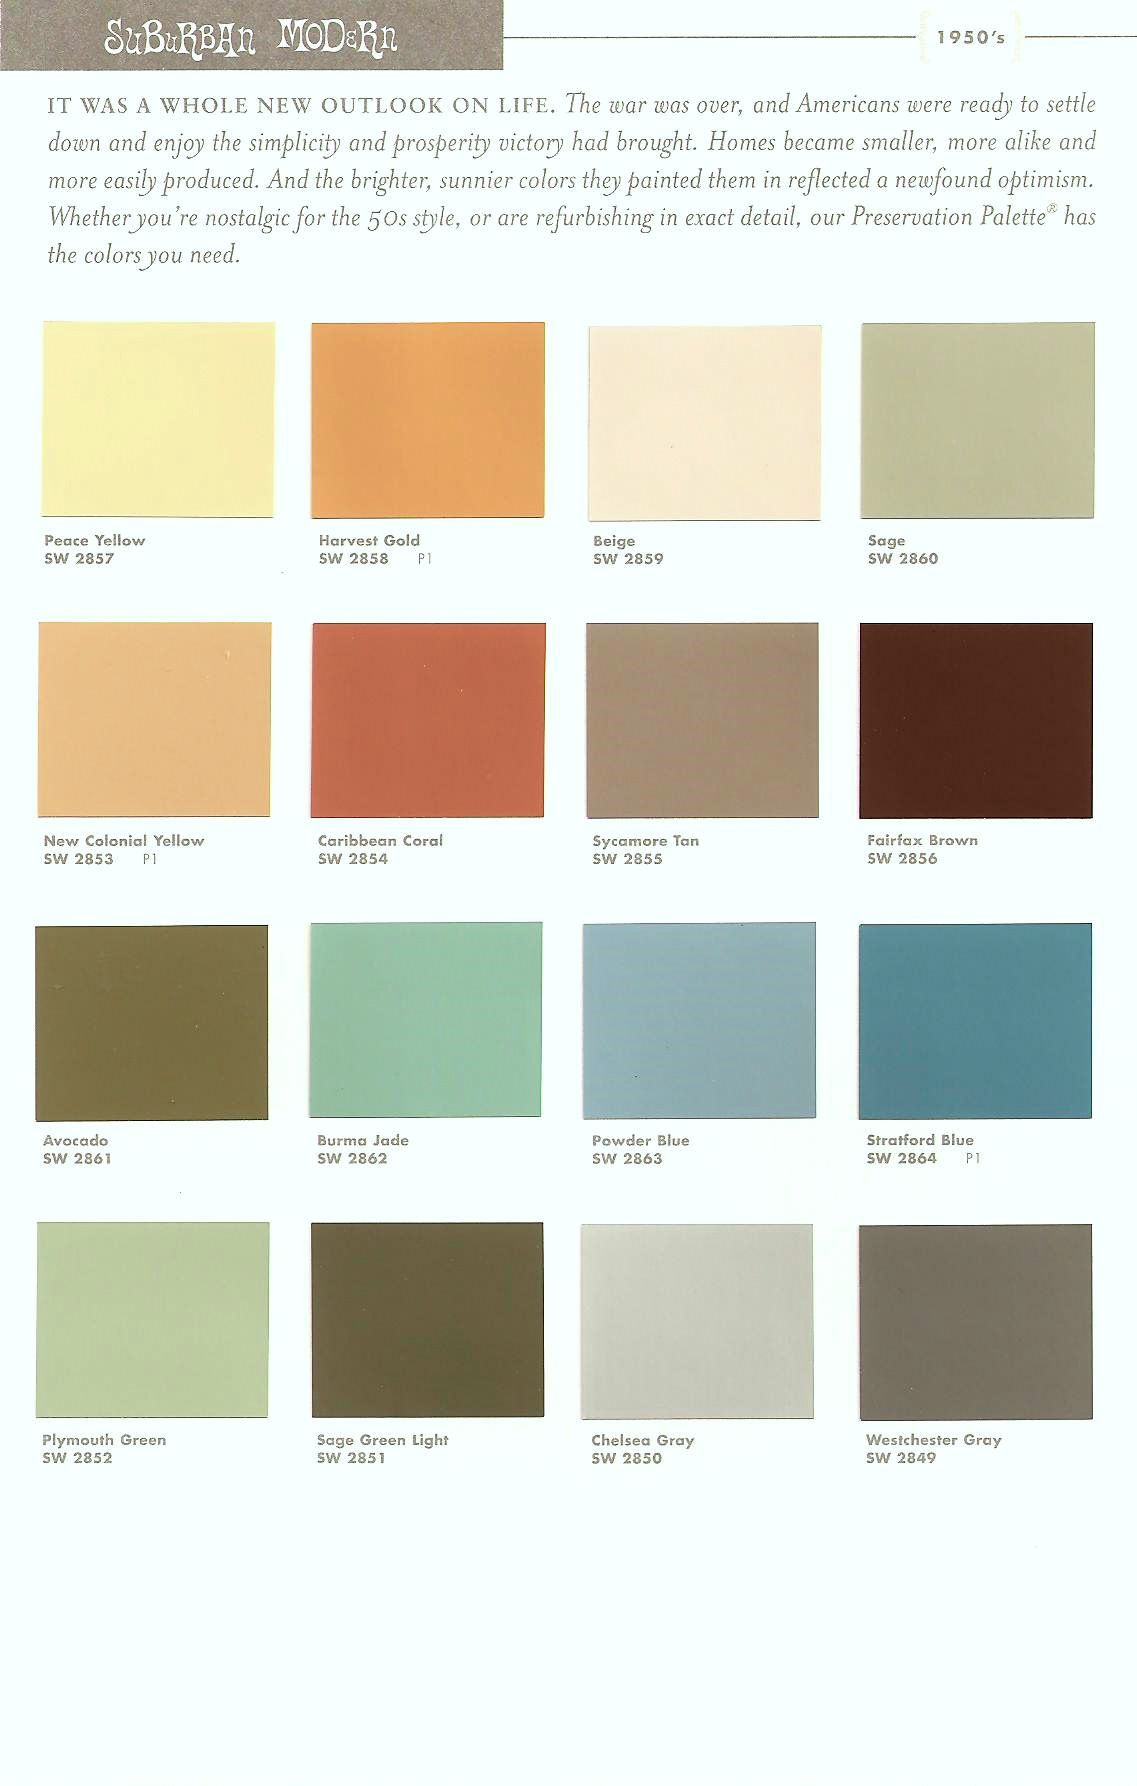 Mid Century Modern Interior Paint Colors Sherwin Williams Suburban Modern Paint Colors 1 For 50s